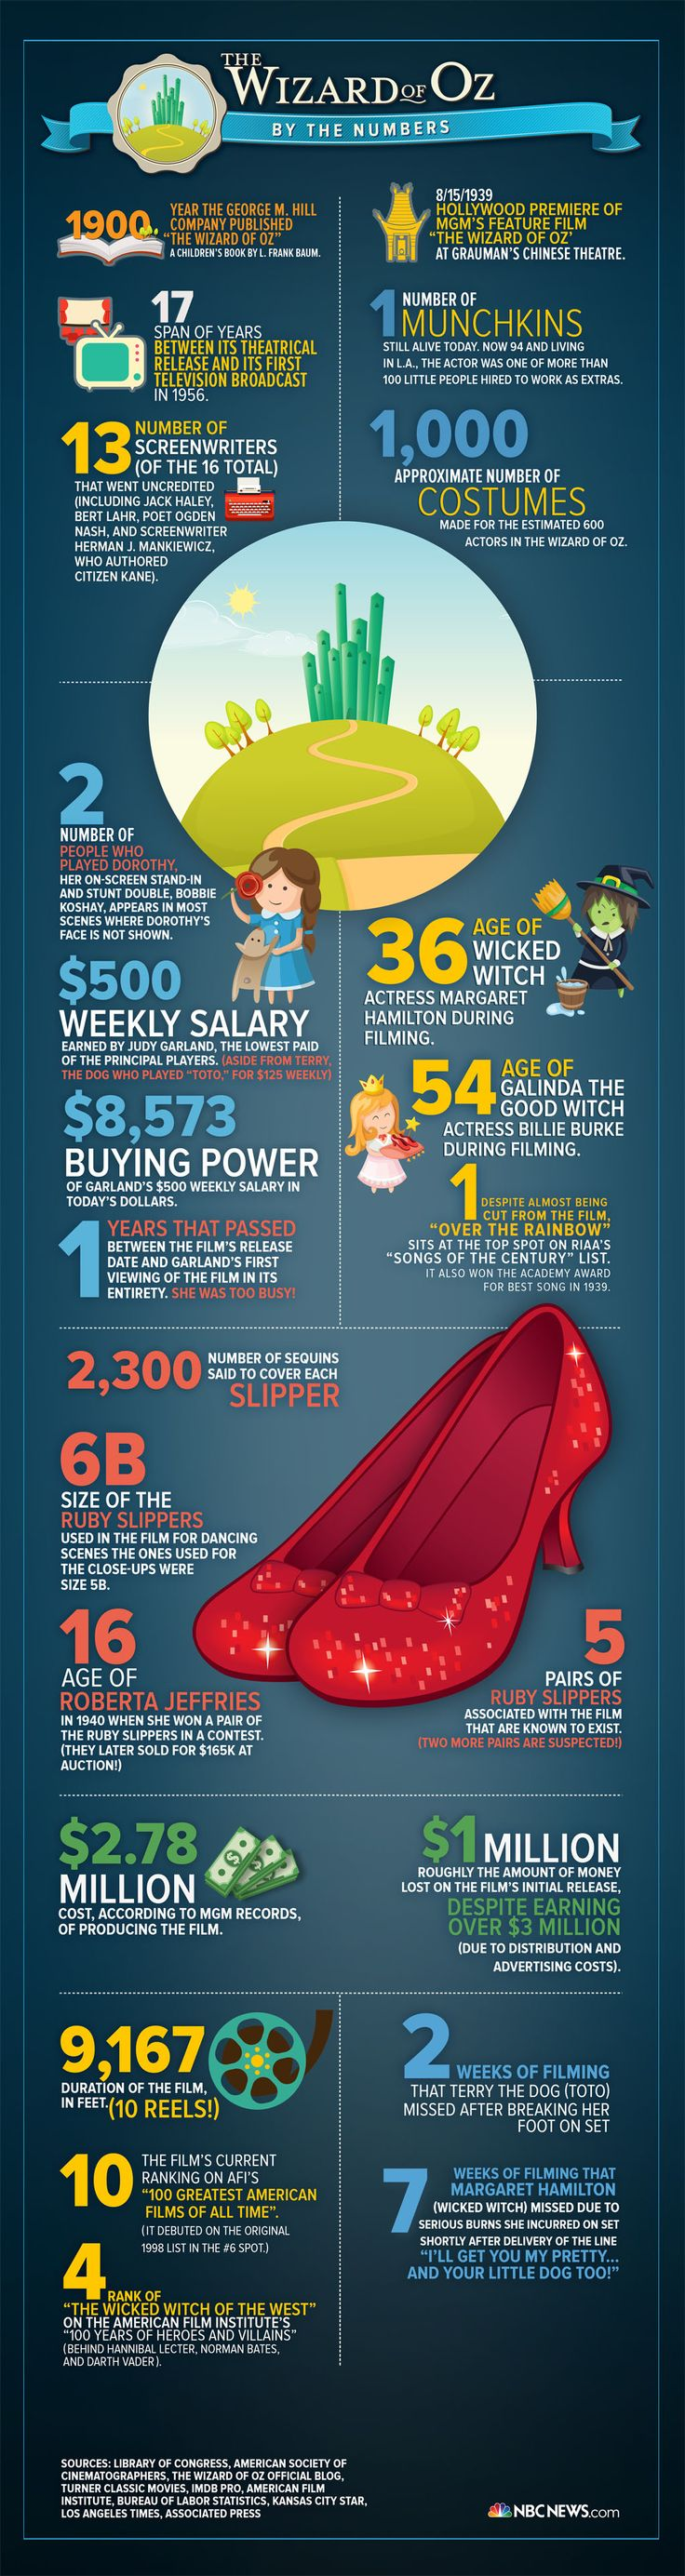 Wizard of oz quotes - Infographic Wizard Of Oz At 75